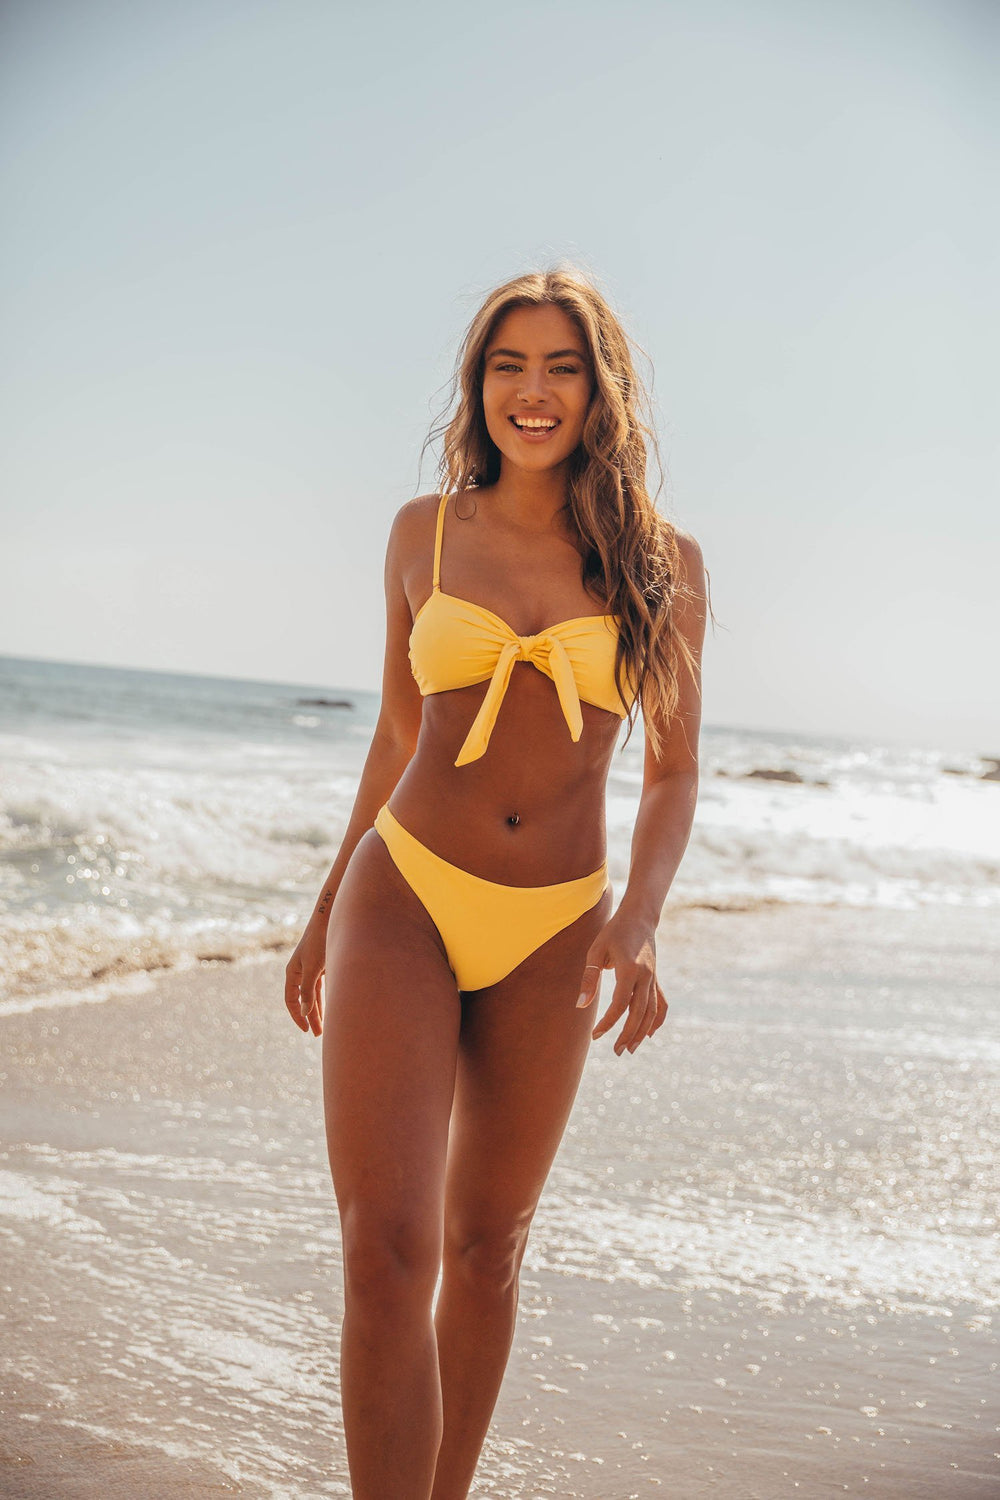 Praiano Bikini Top - Lemon Drop Yellow